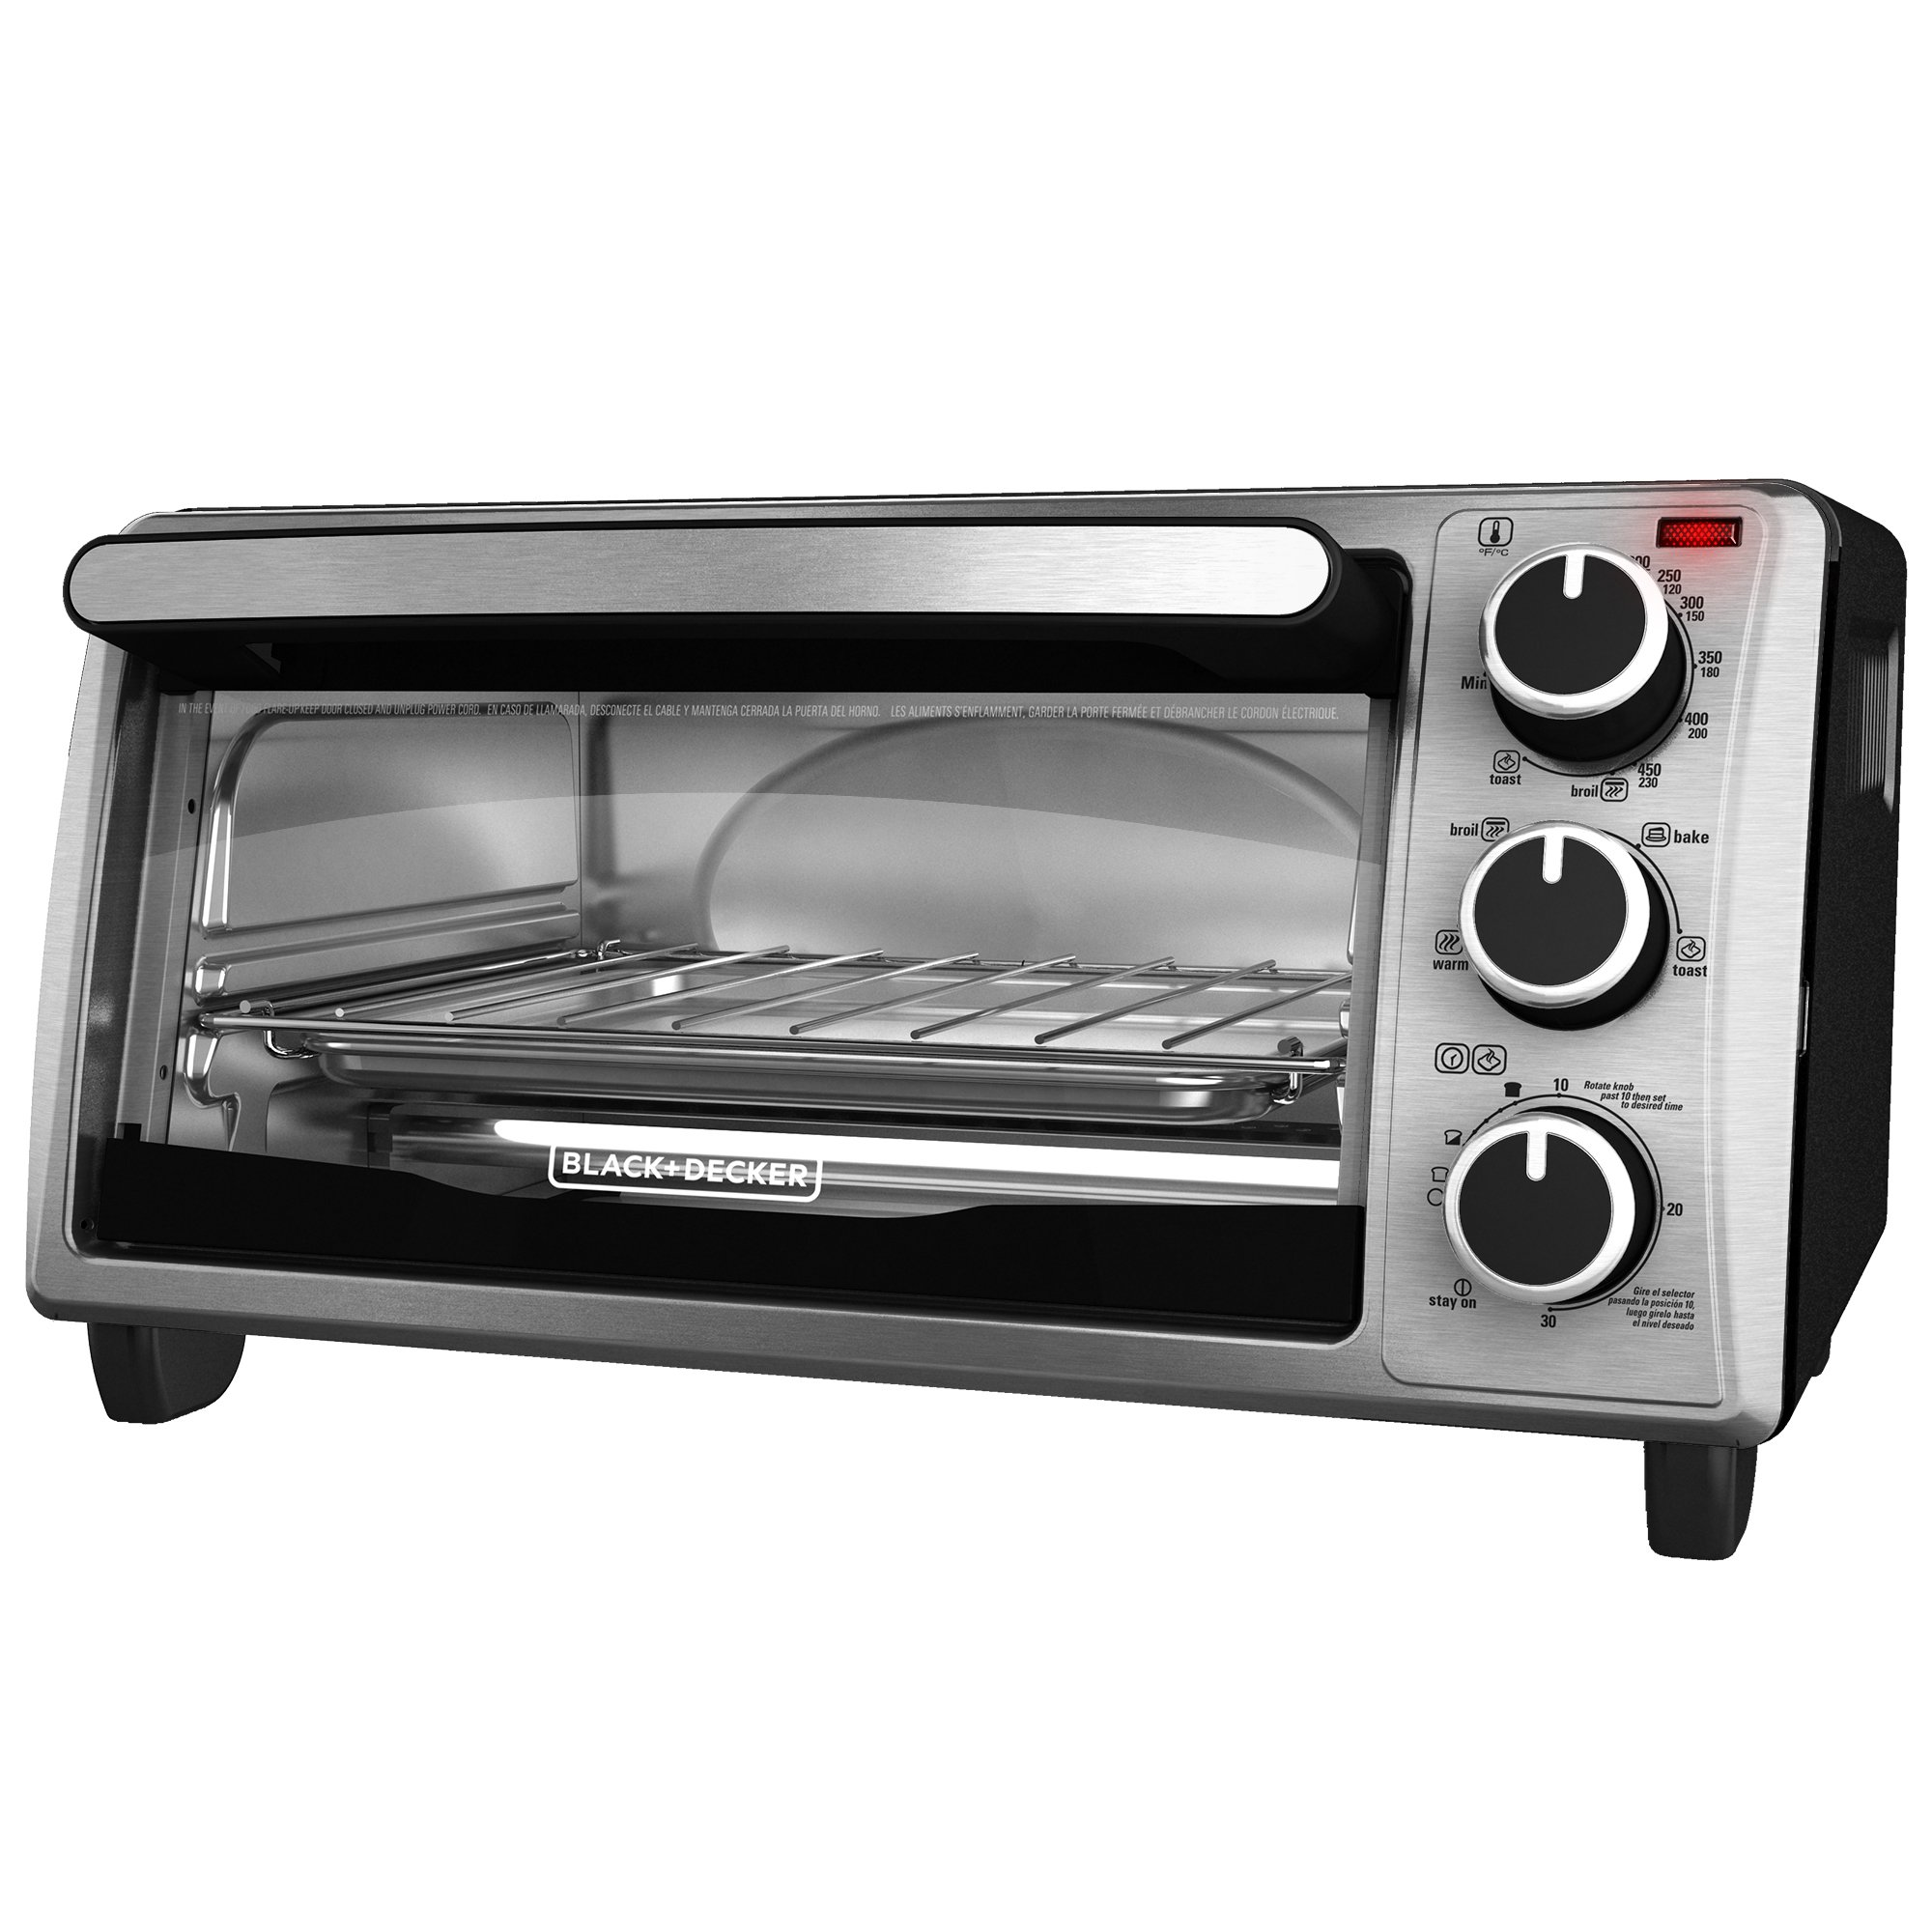 Countertop Oven Philippines Galleon Black 43decker To1303sb 4 Slice Toaster Oven